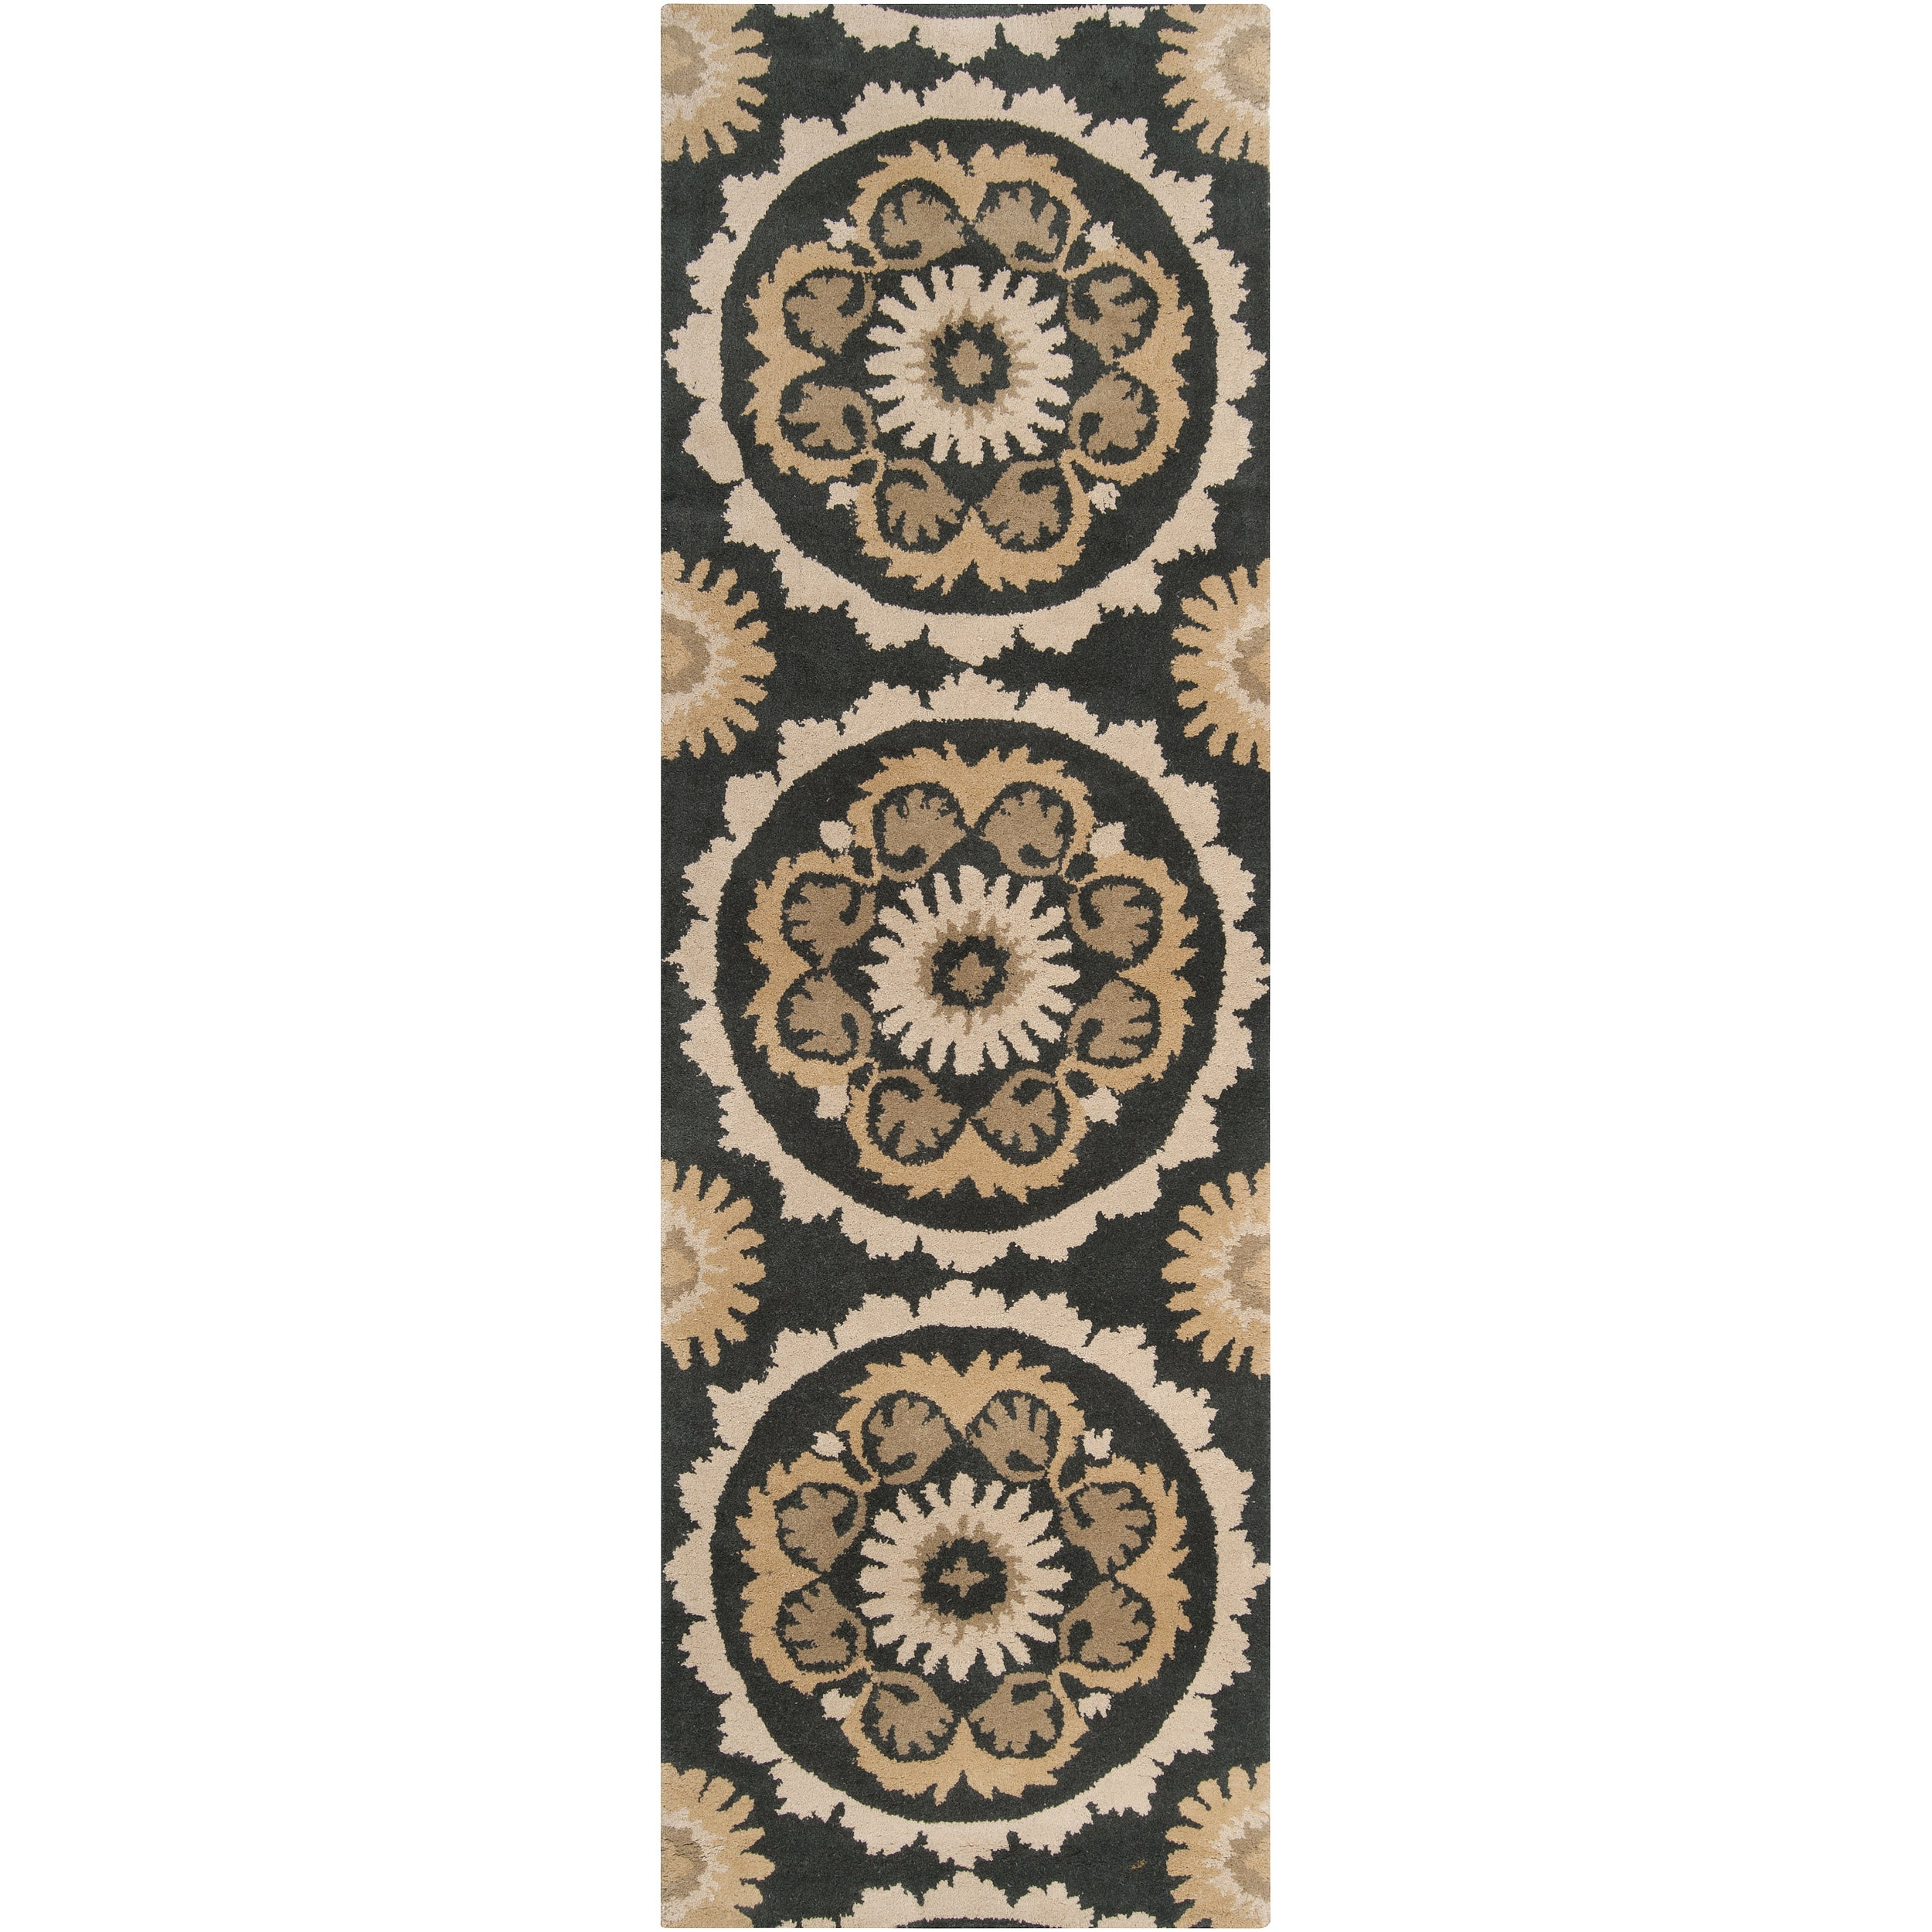 B. Smith Hand-tufted Grey Kategelo New Zealand Wool Rug (2'6 x 8')